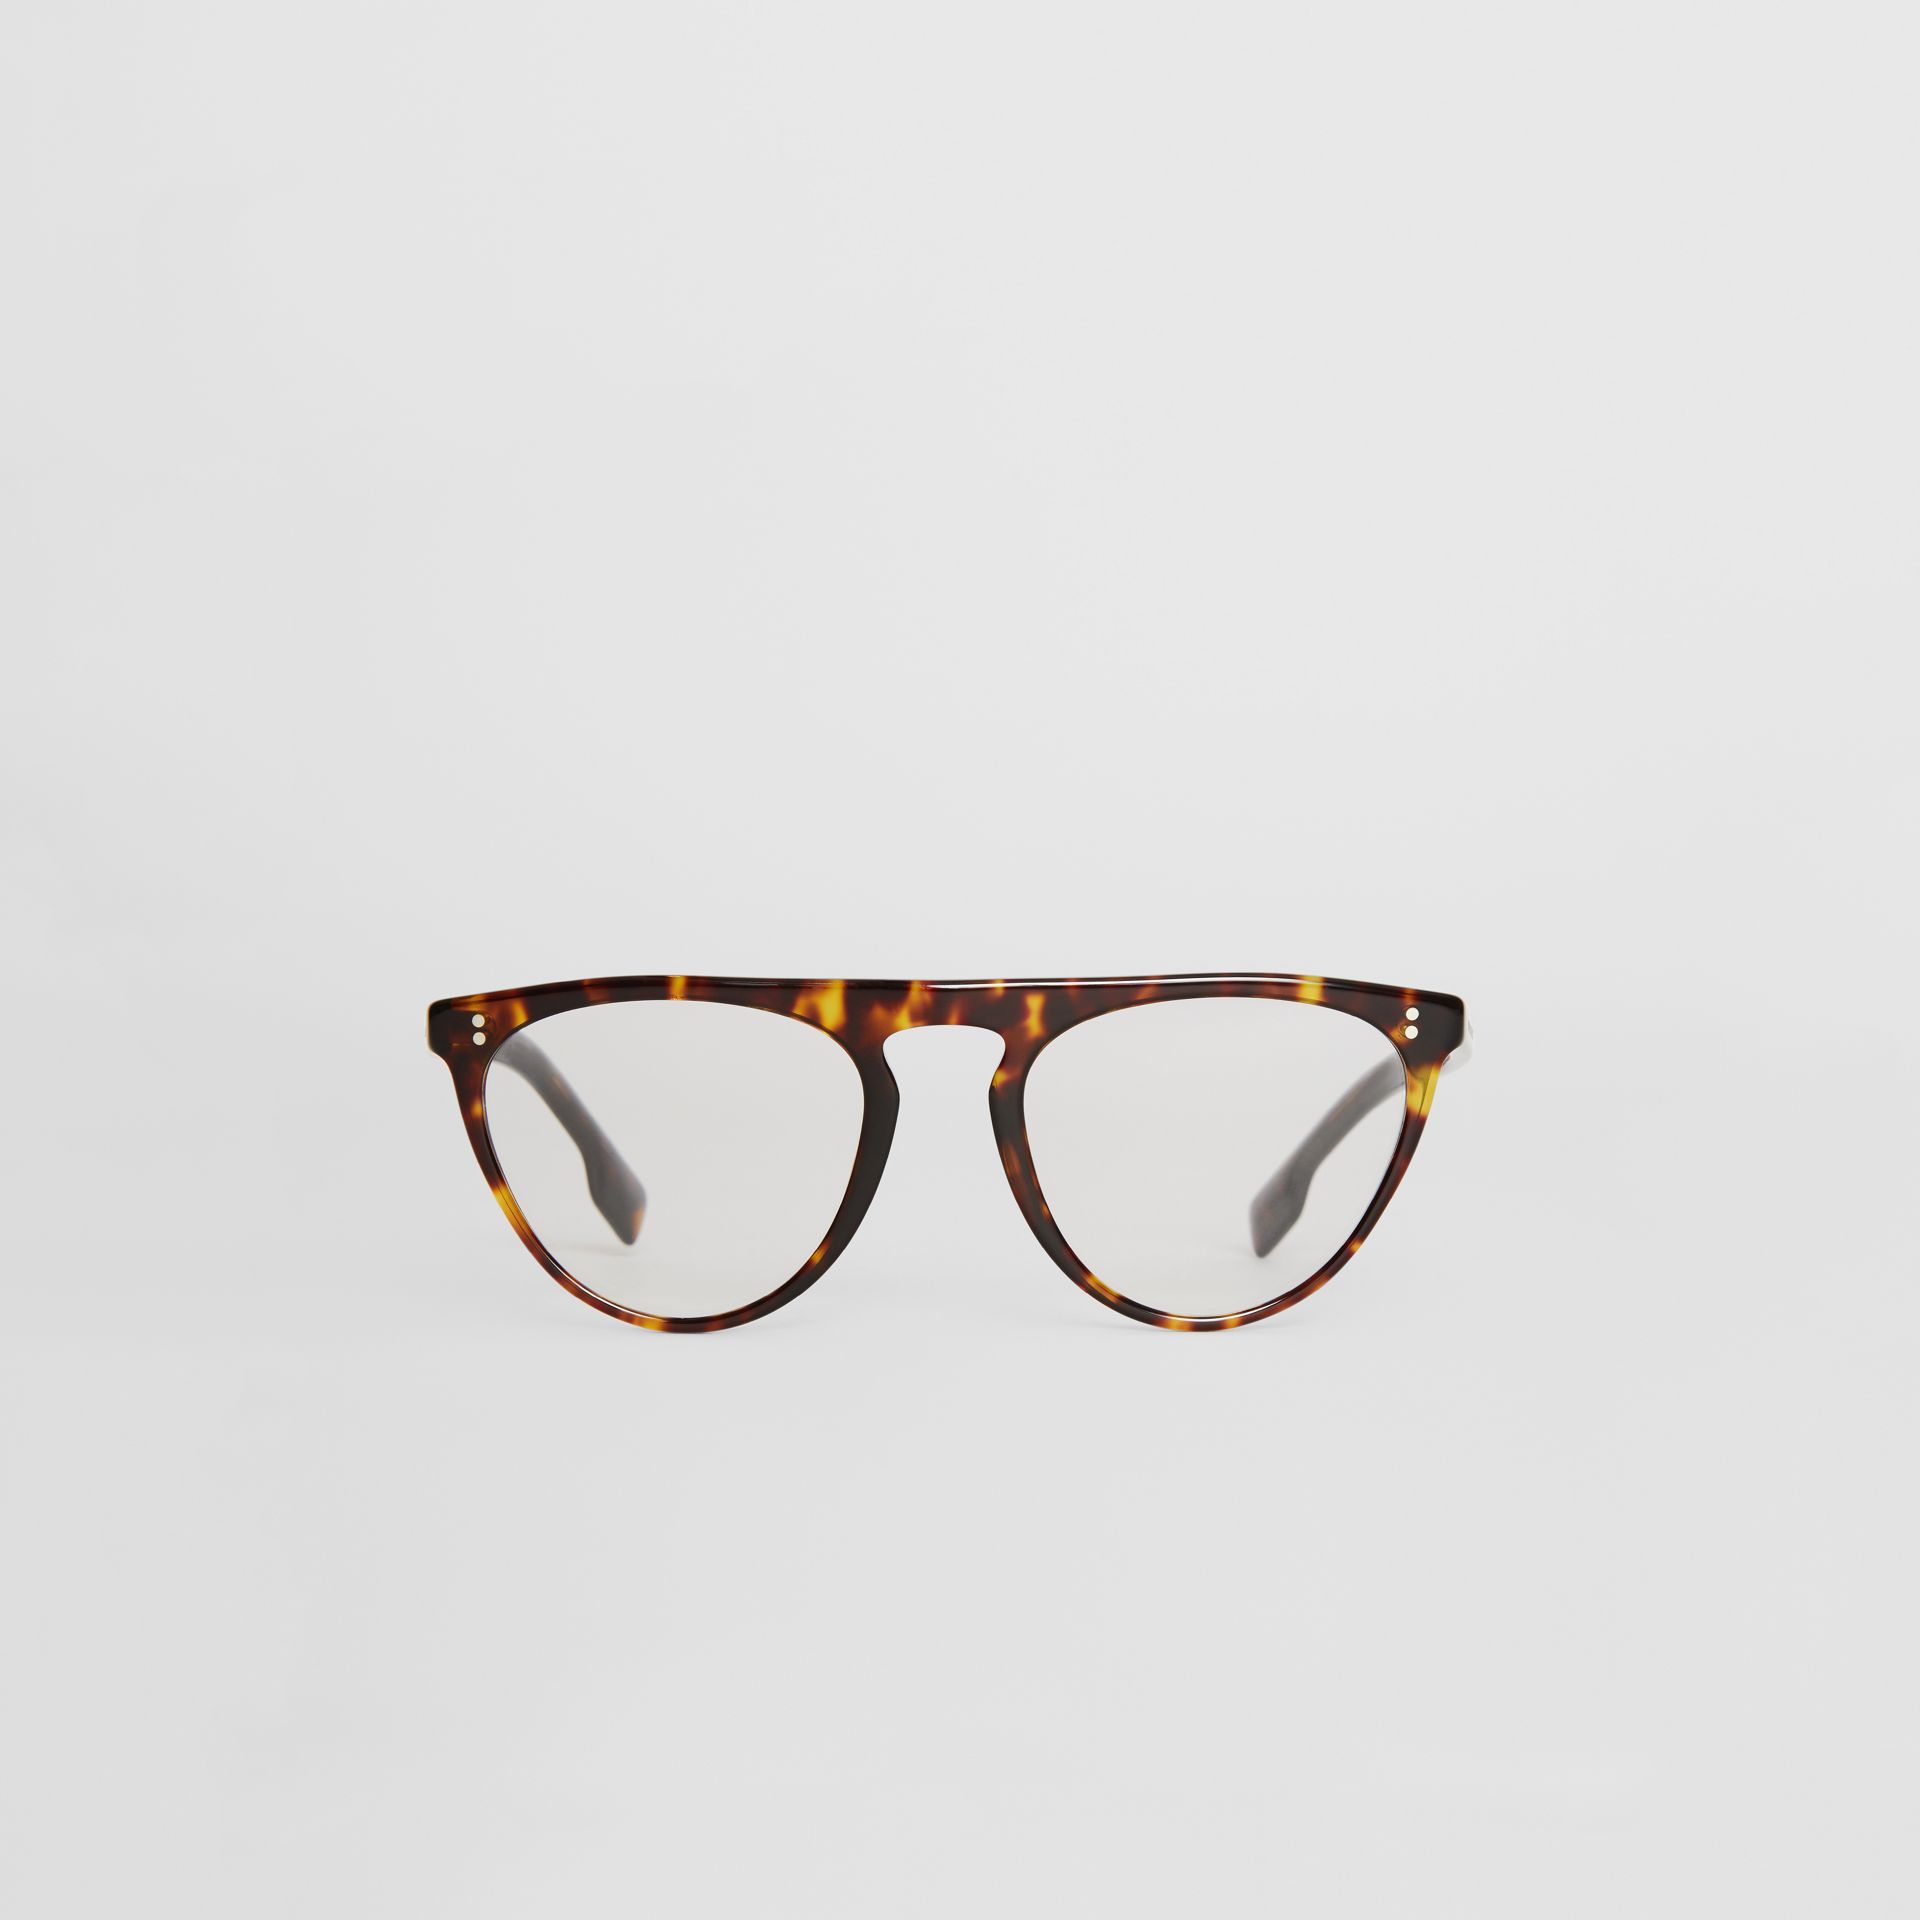 Keyhole D-shaped Optical Frames in Tortoise Shell - Men | Burberry United Kingdom - gallery image 0